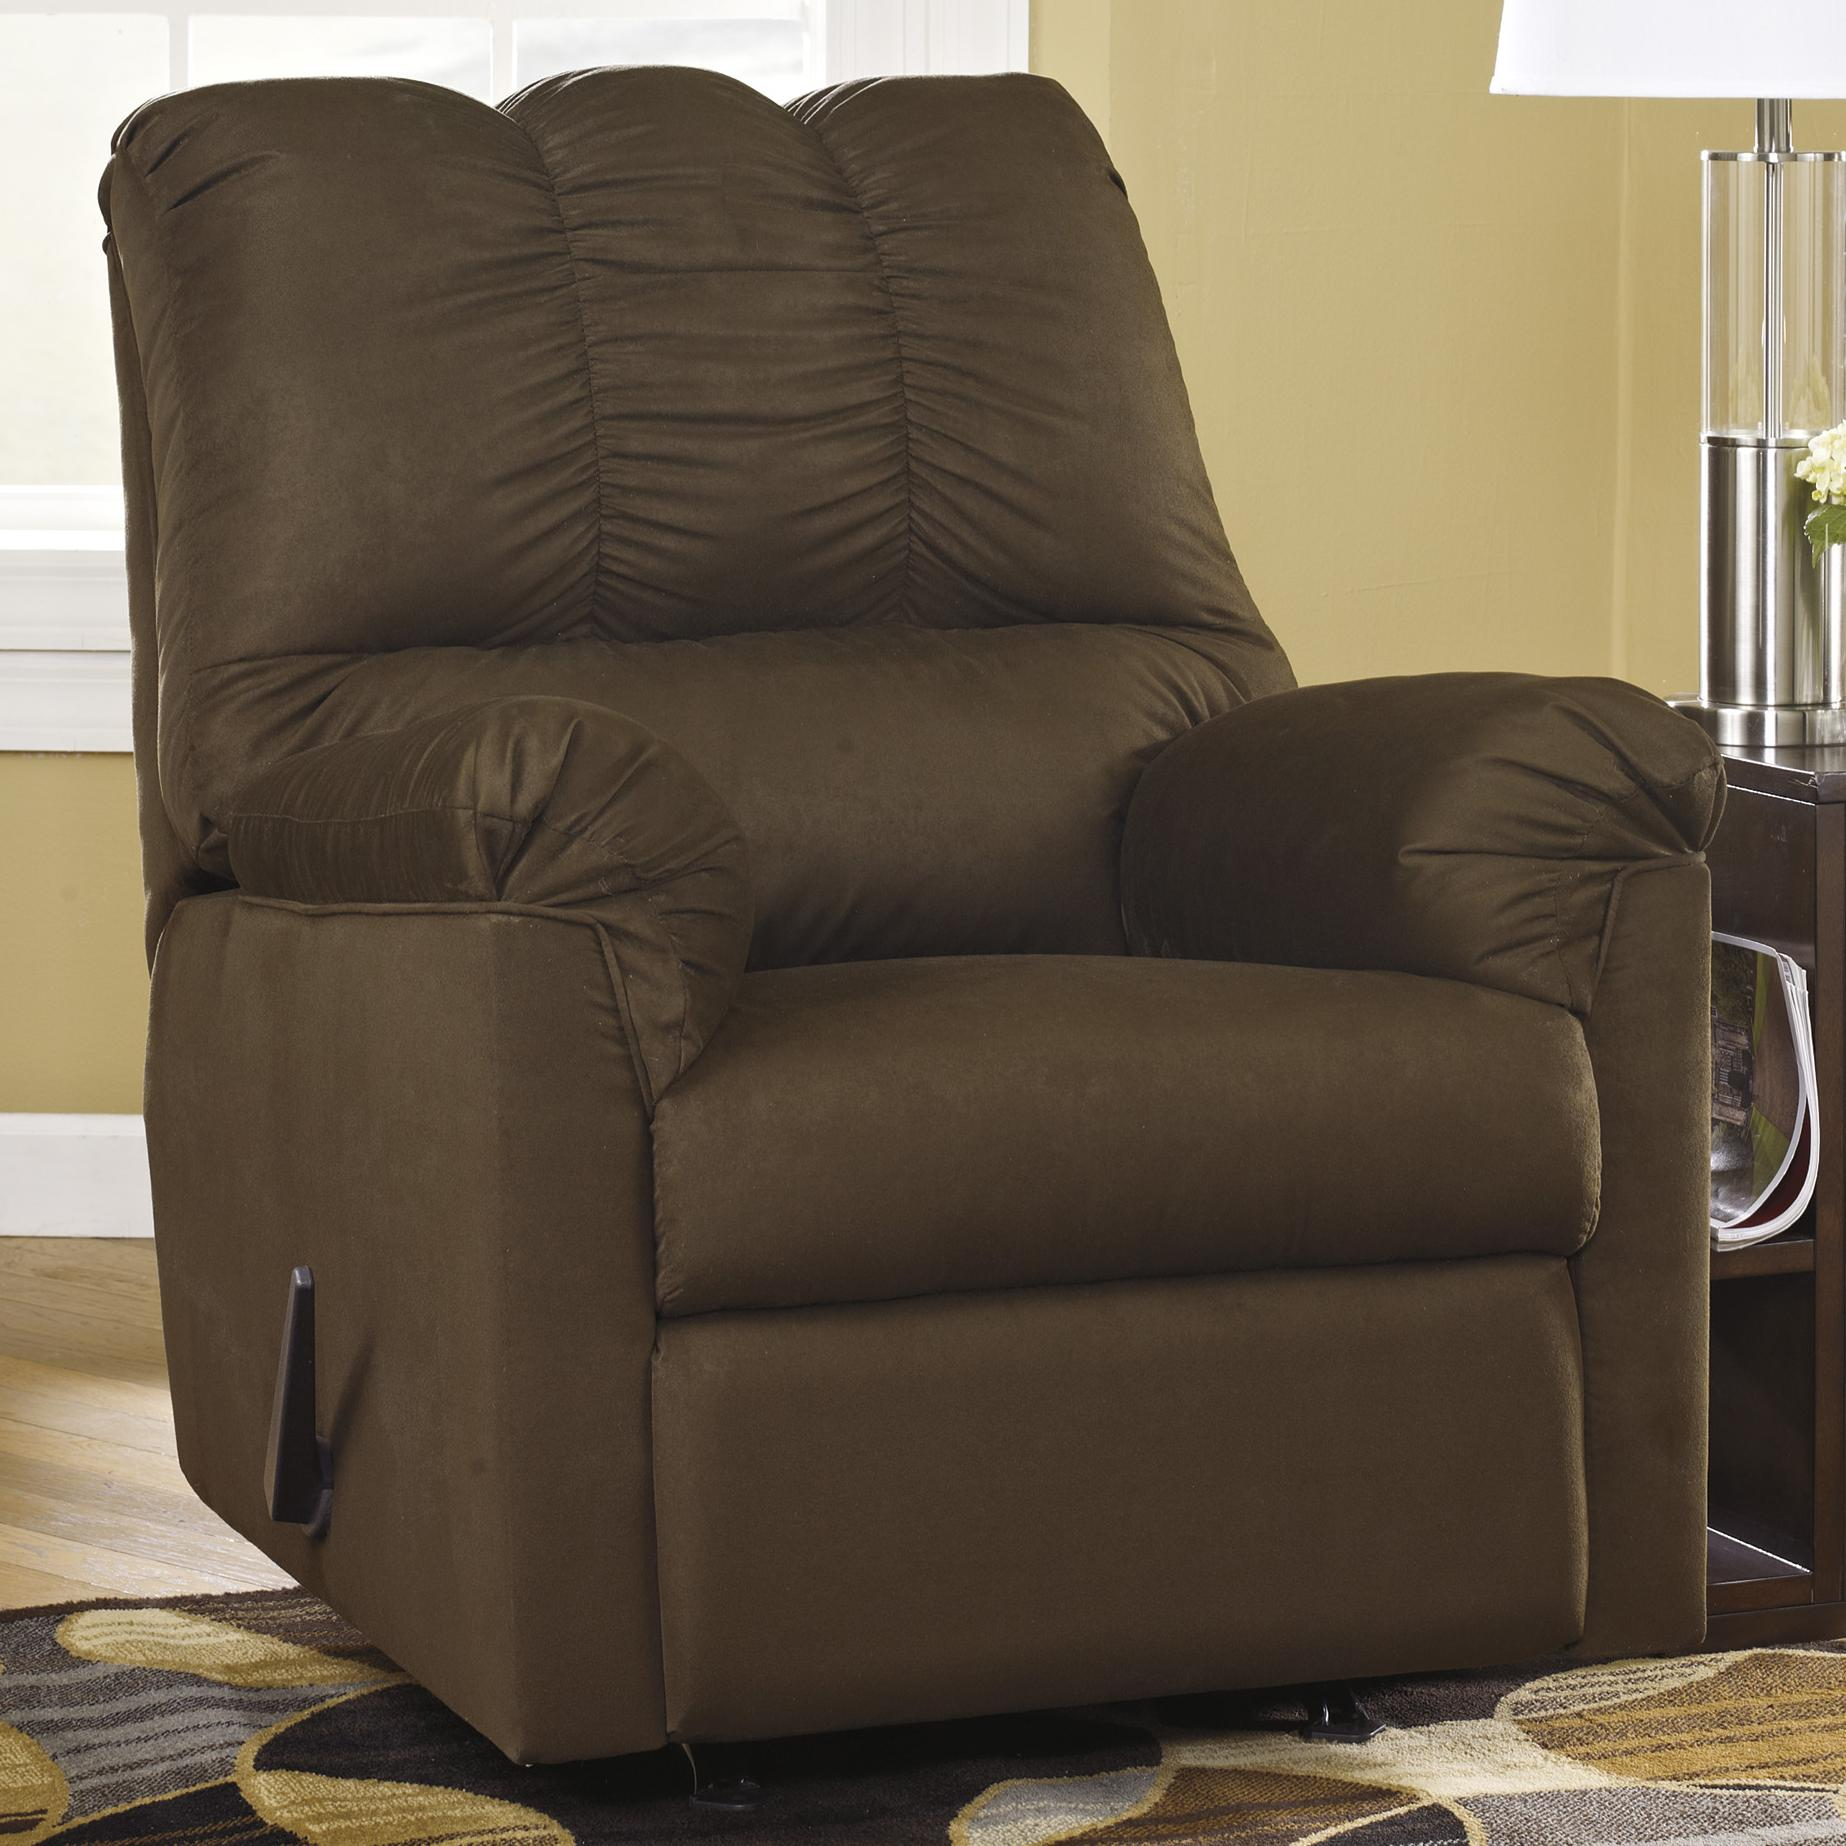 Signature Design by Ashley Darcy - Cafe Rocker Recliner - Item Number: 7500425